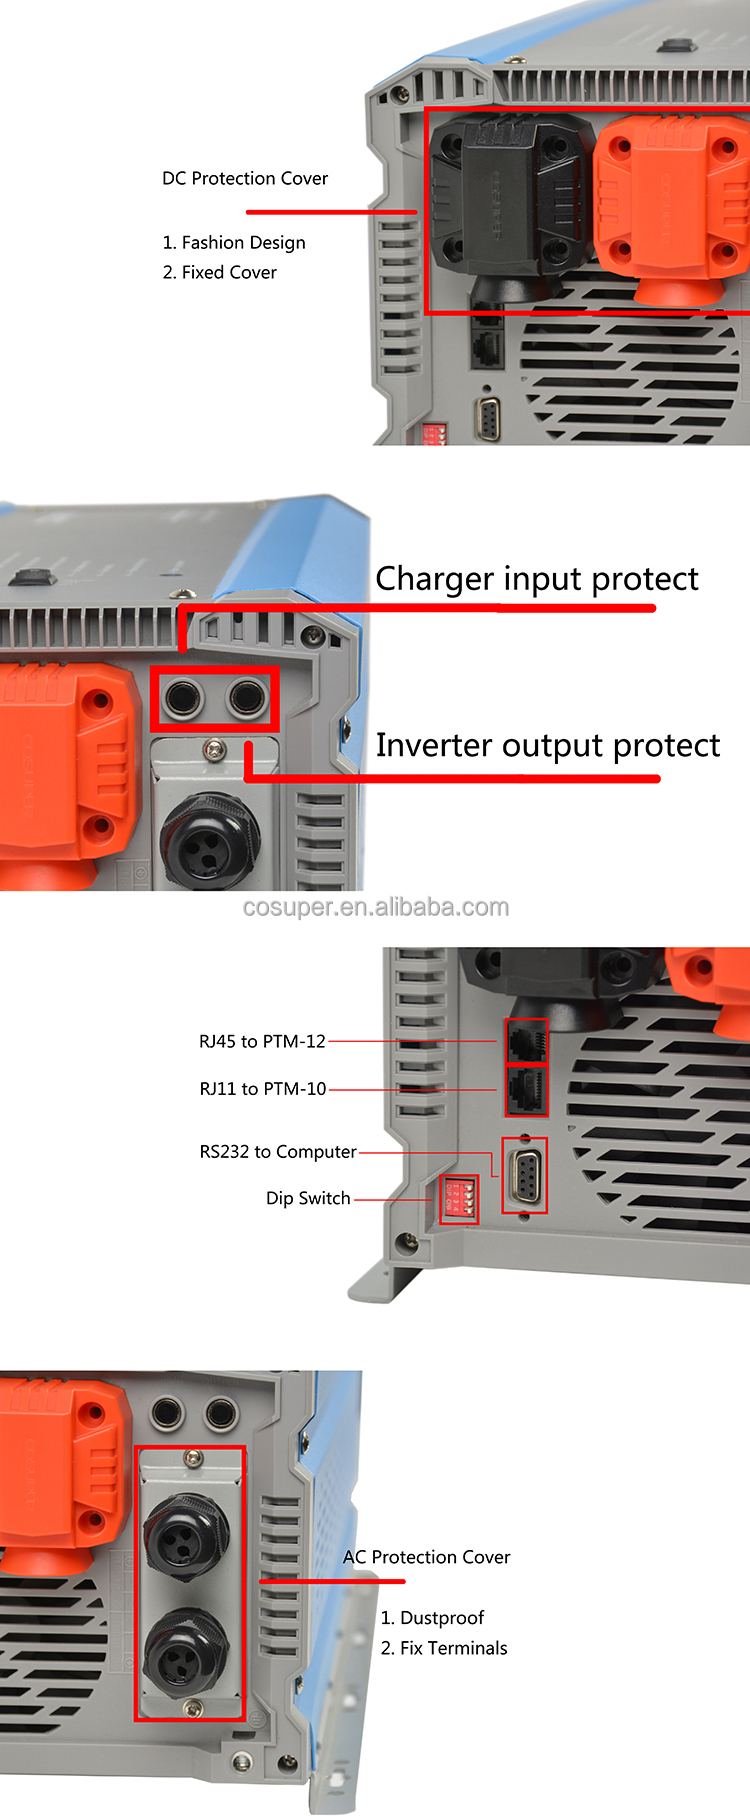 12 Volt Fan Inverter Servo Motor 1200 Watt Powerinverter